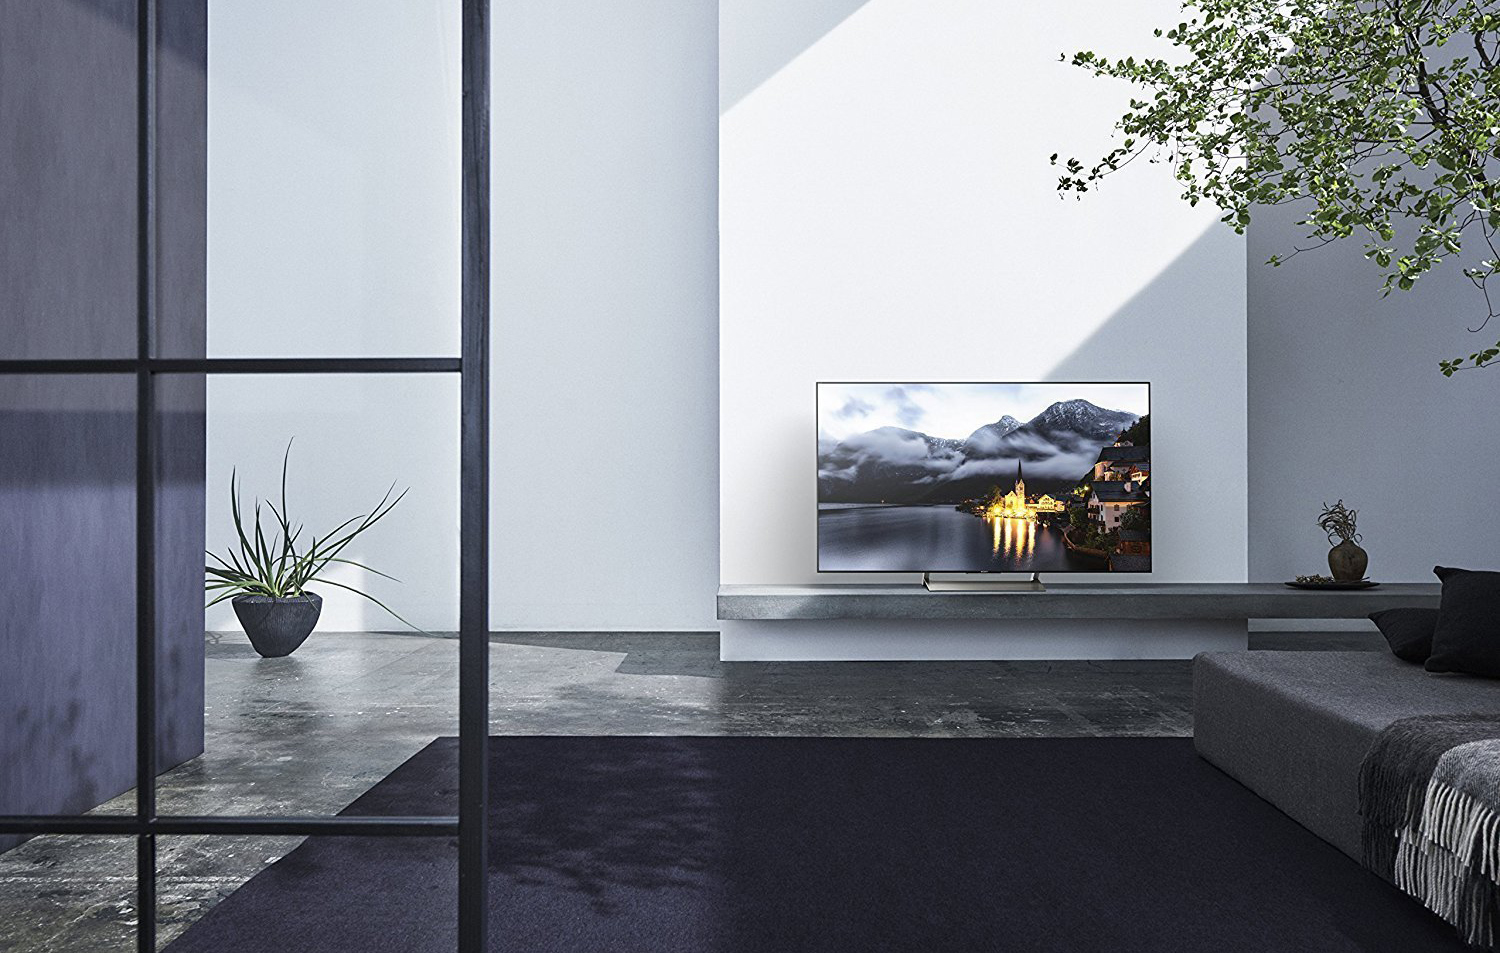 Black Friday came early for this stunning Sony 65″ 4K TV – just $600 at Amazon